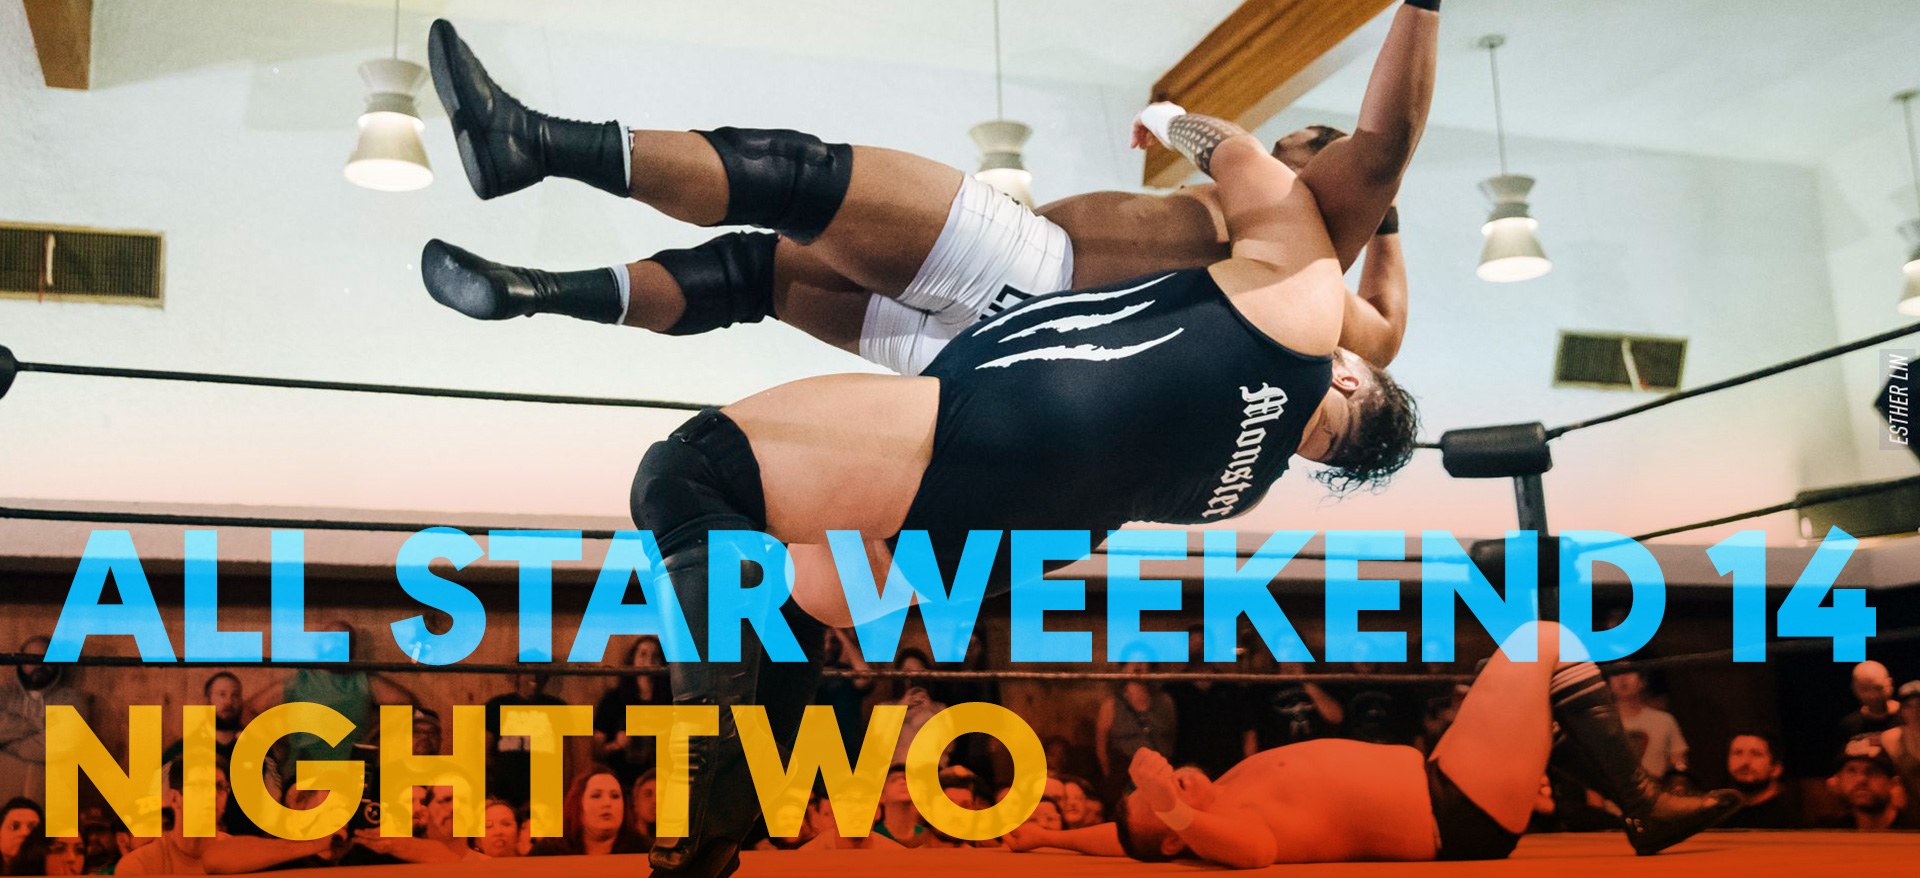 PWG: All Star Weekend Night Two